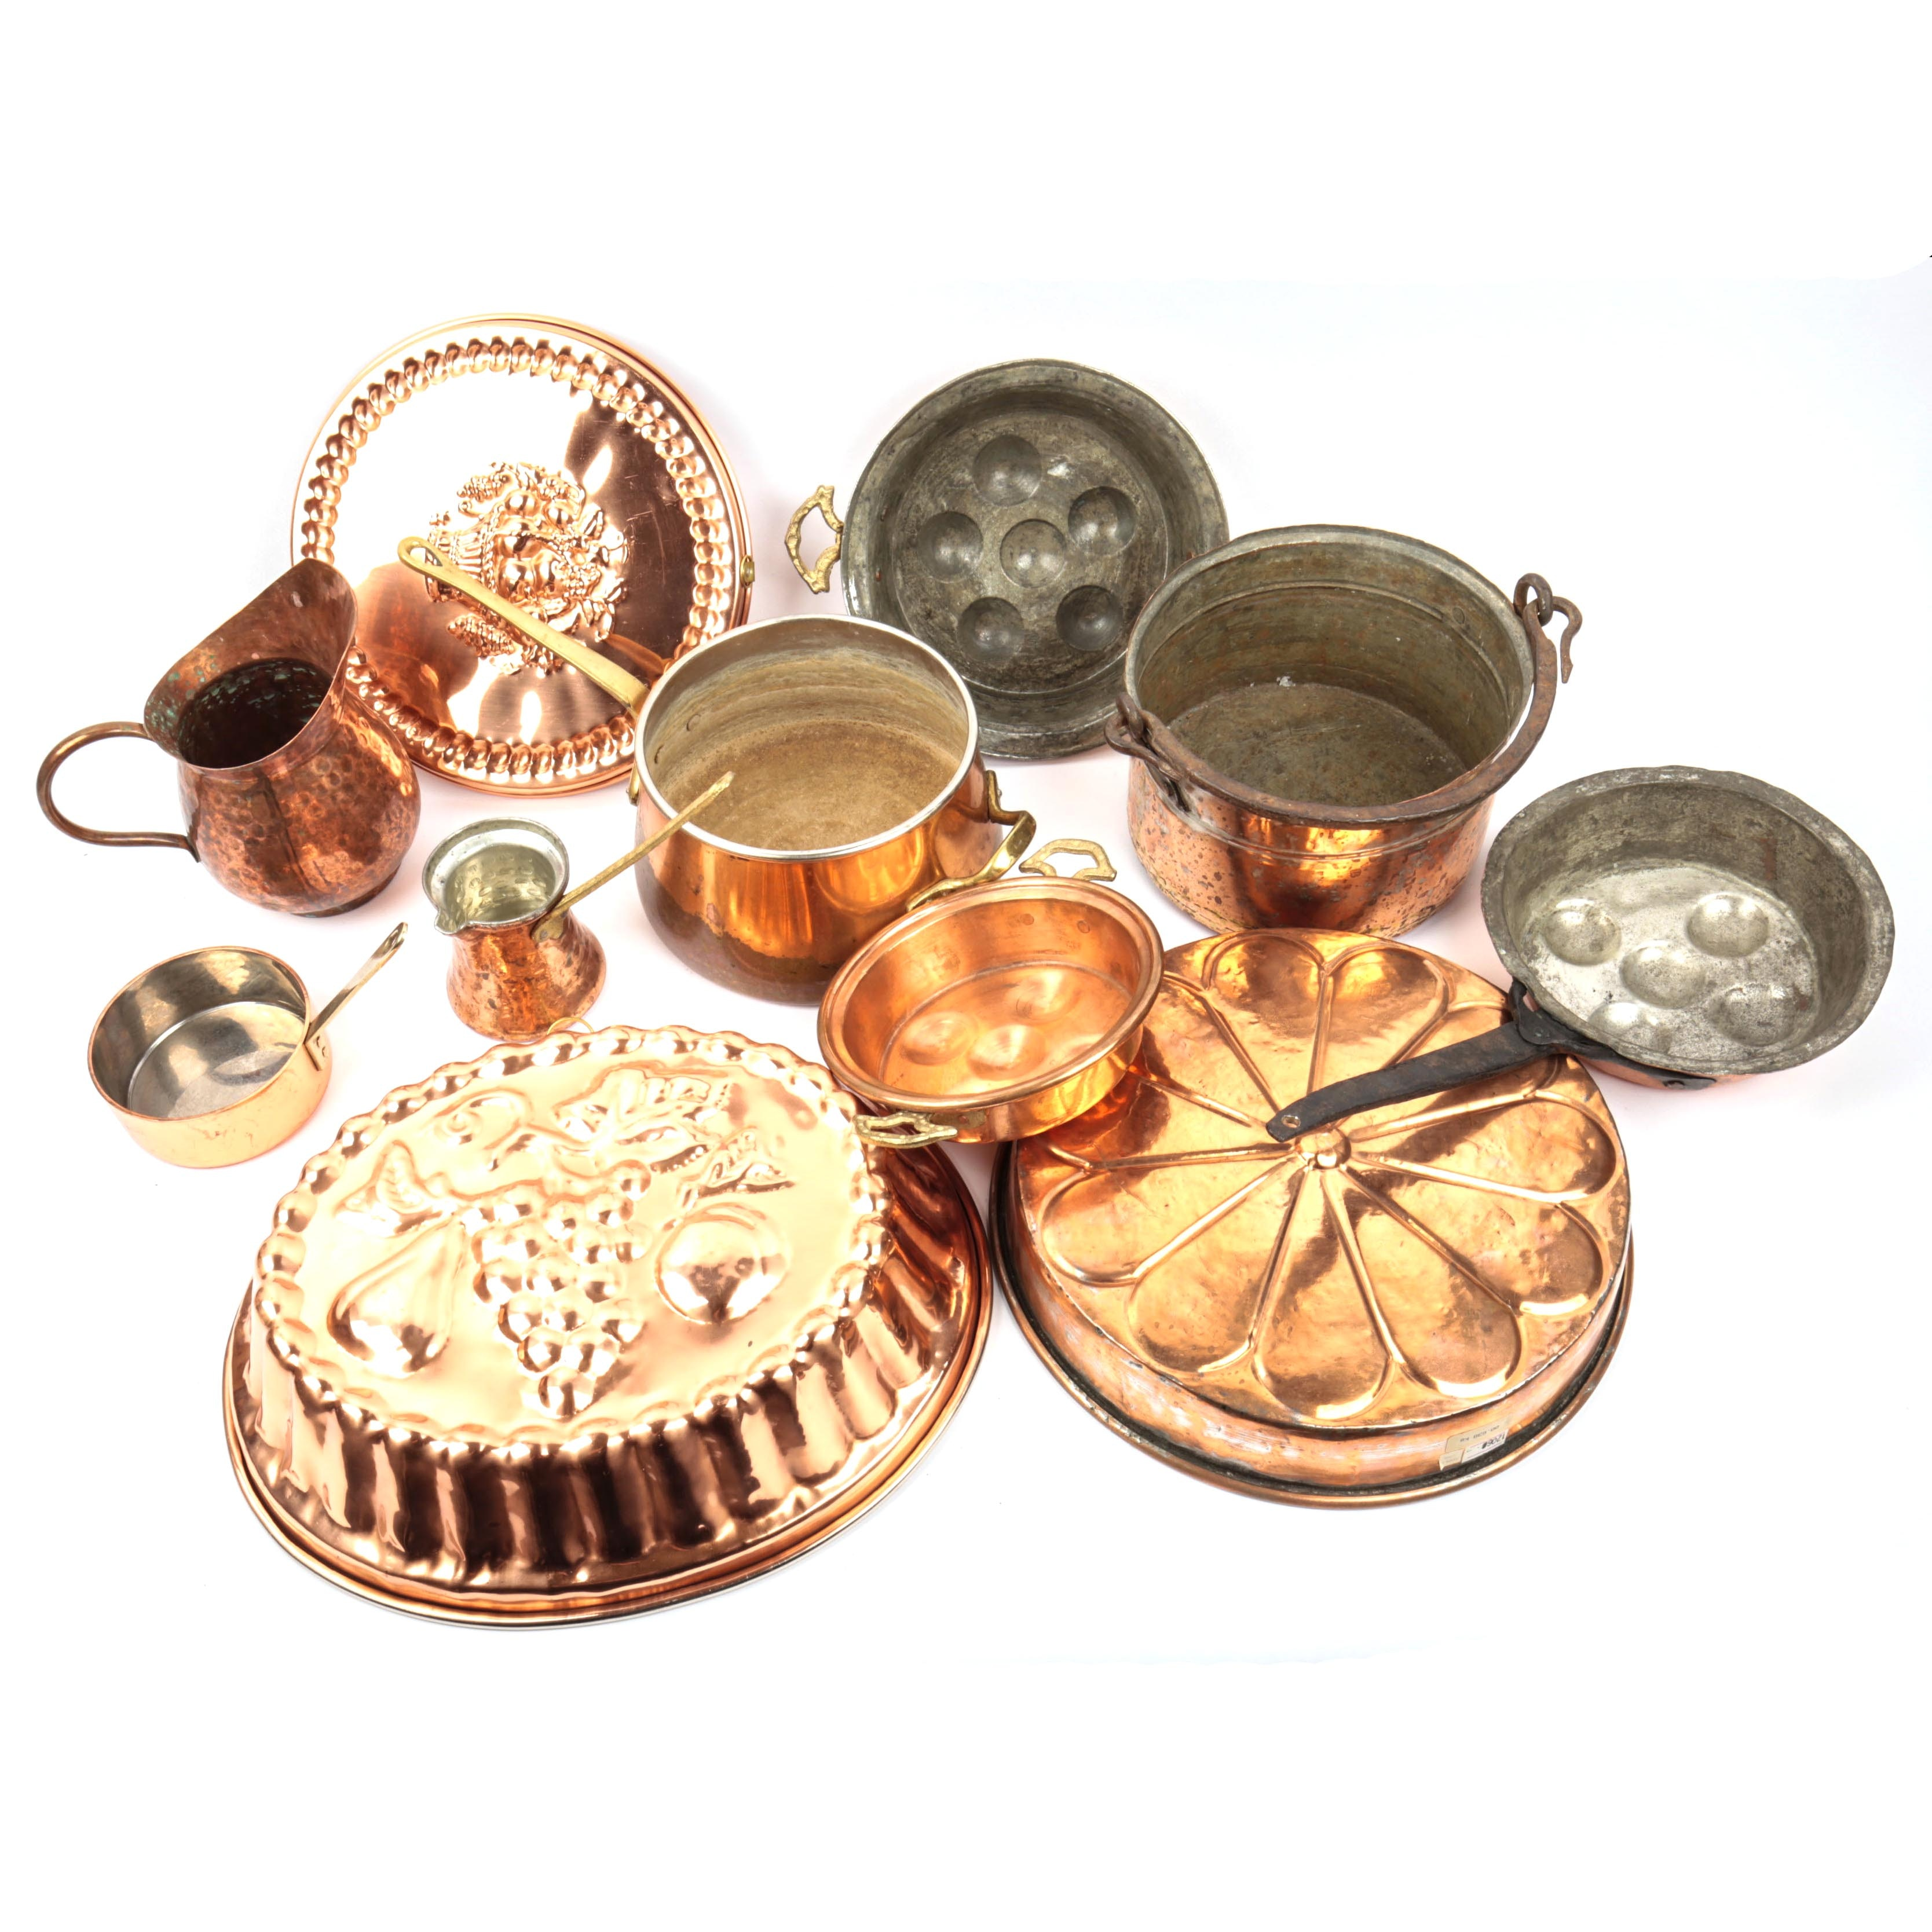 Assortment of Vintage Copper Cookware